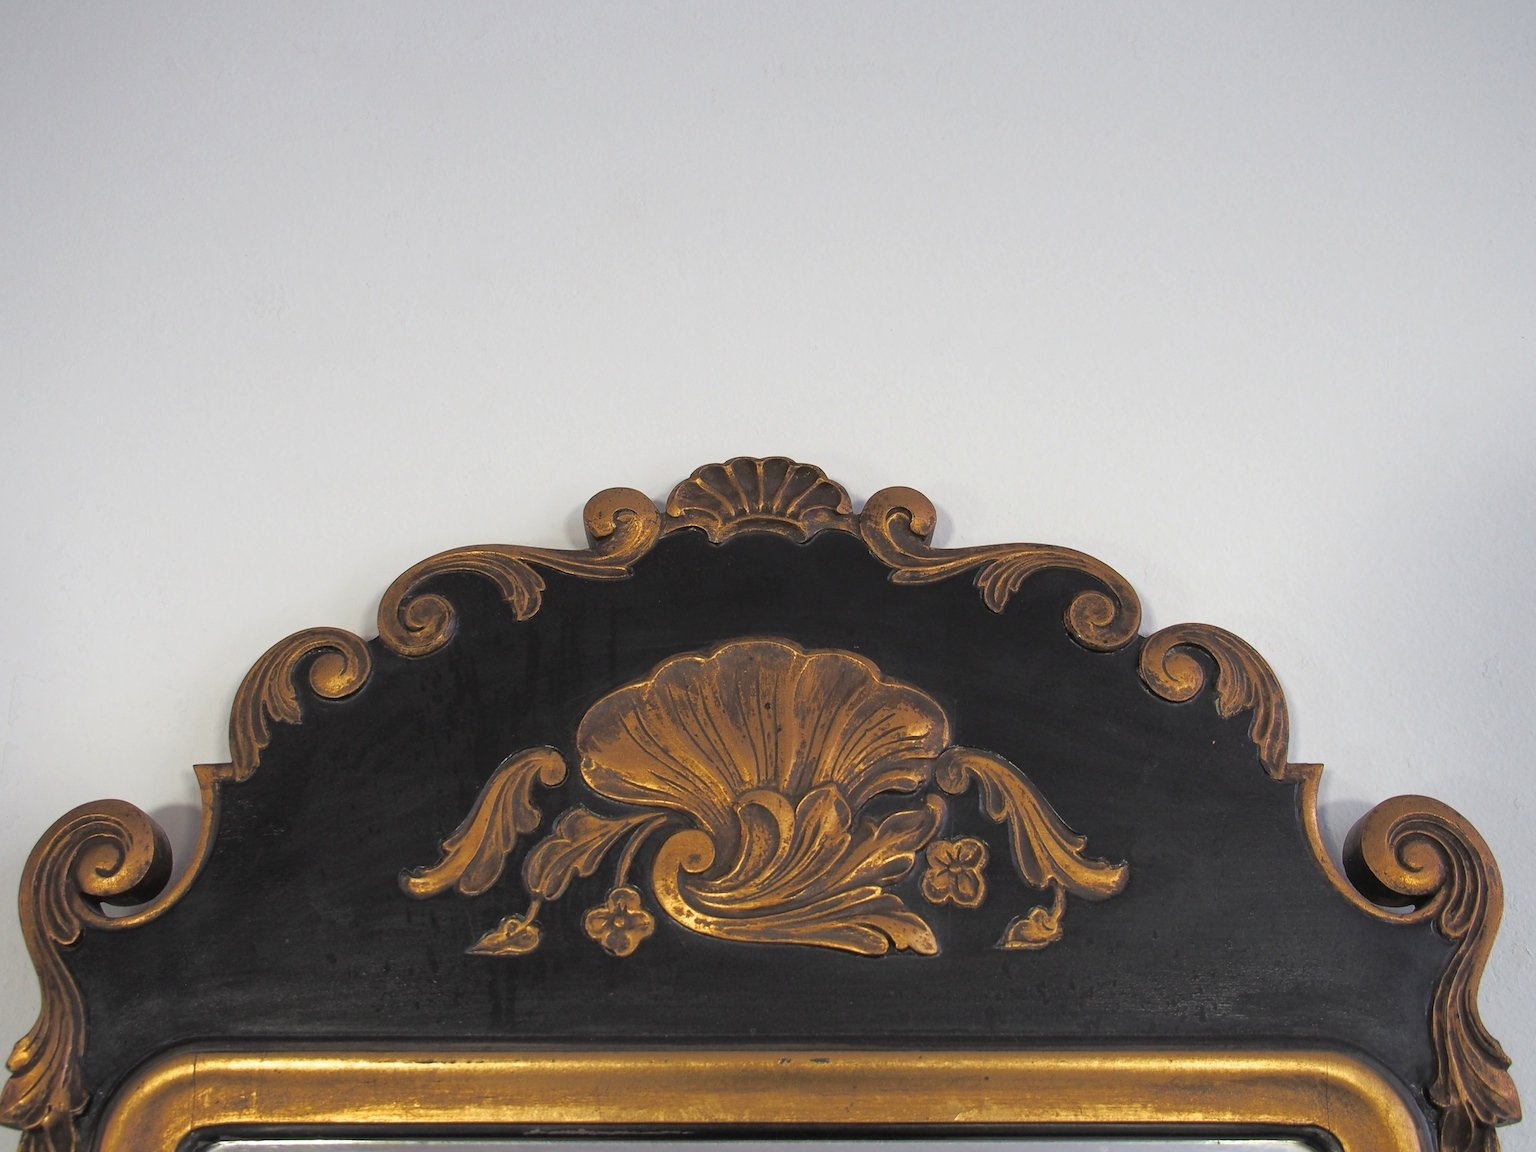 Grand miroir mural antique rococo revival en vente sur pamono for Grand miroir mural